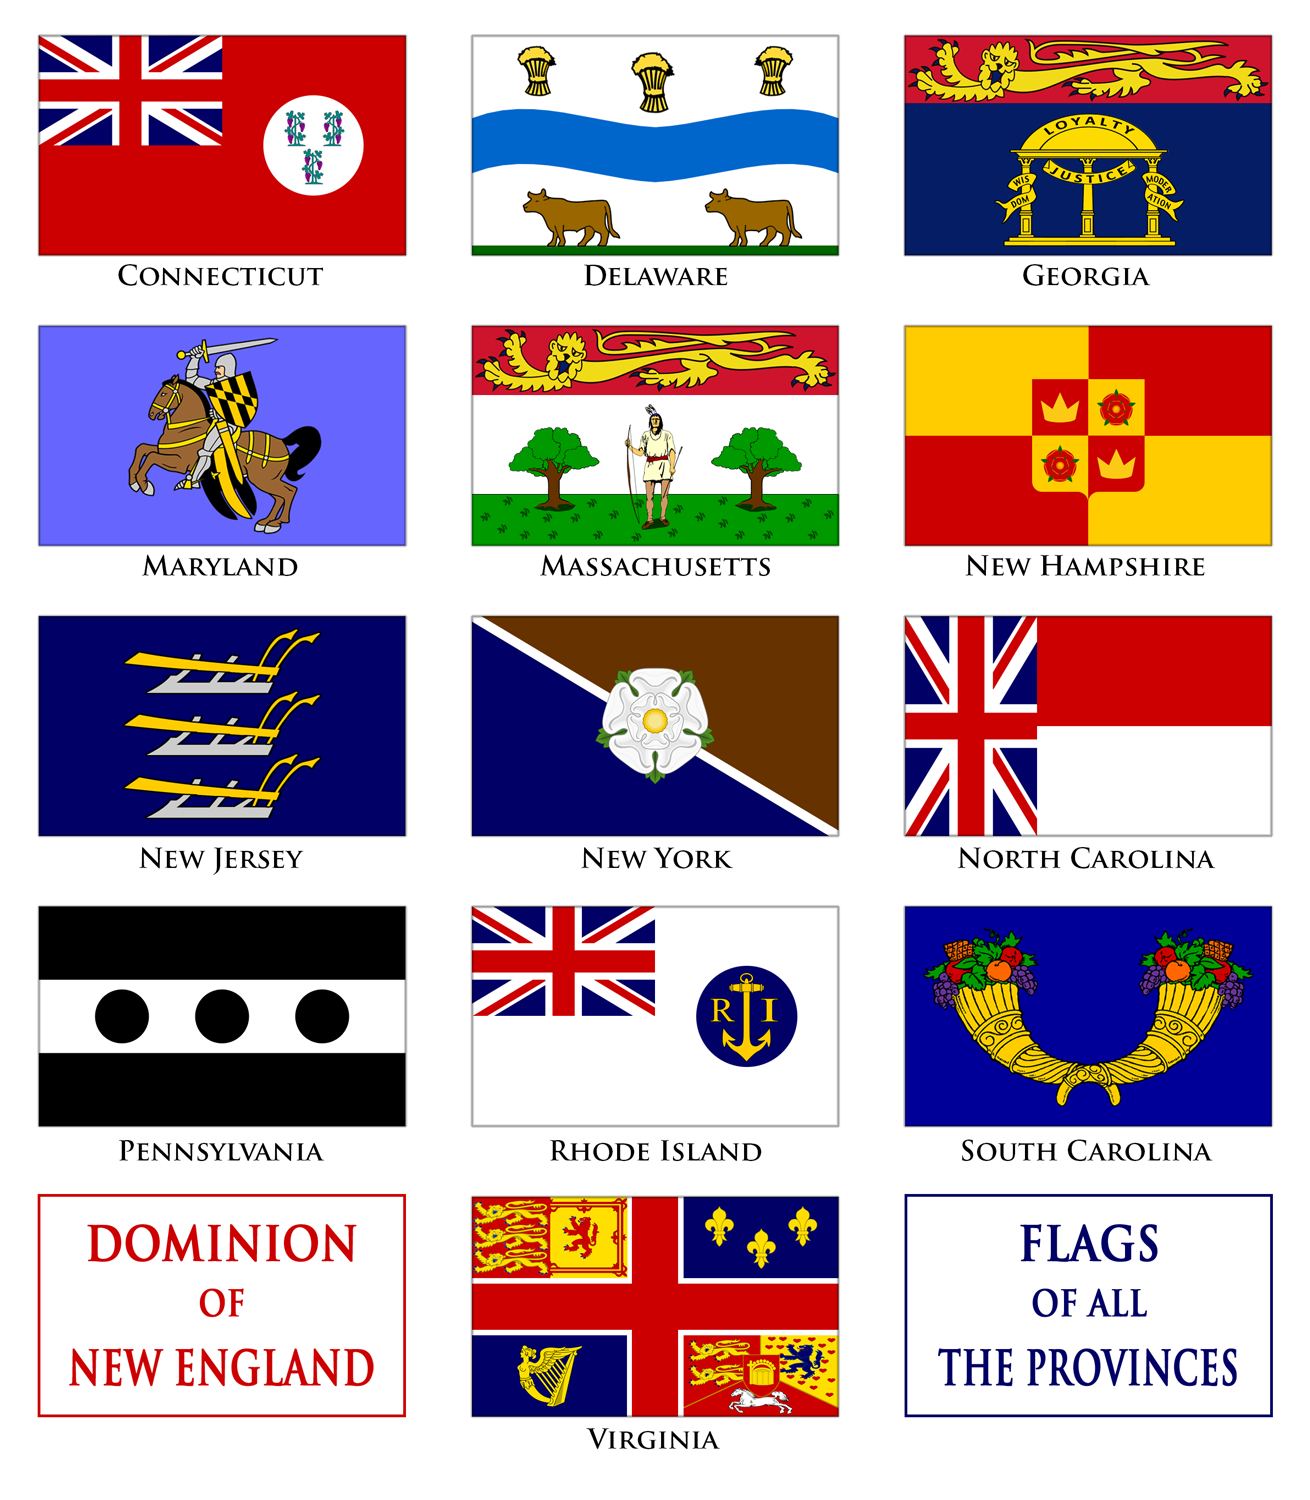 NewEnglandProvinces-table.png